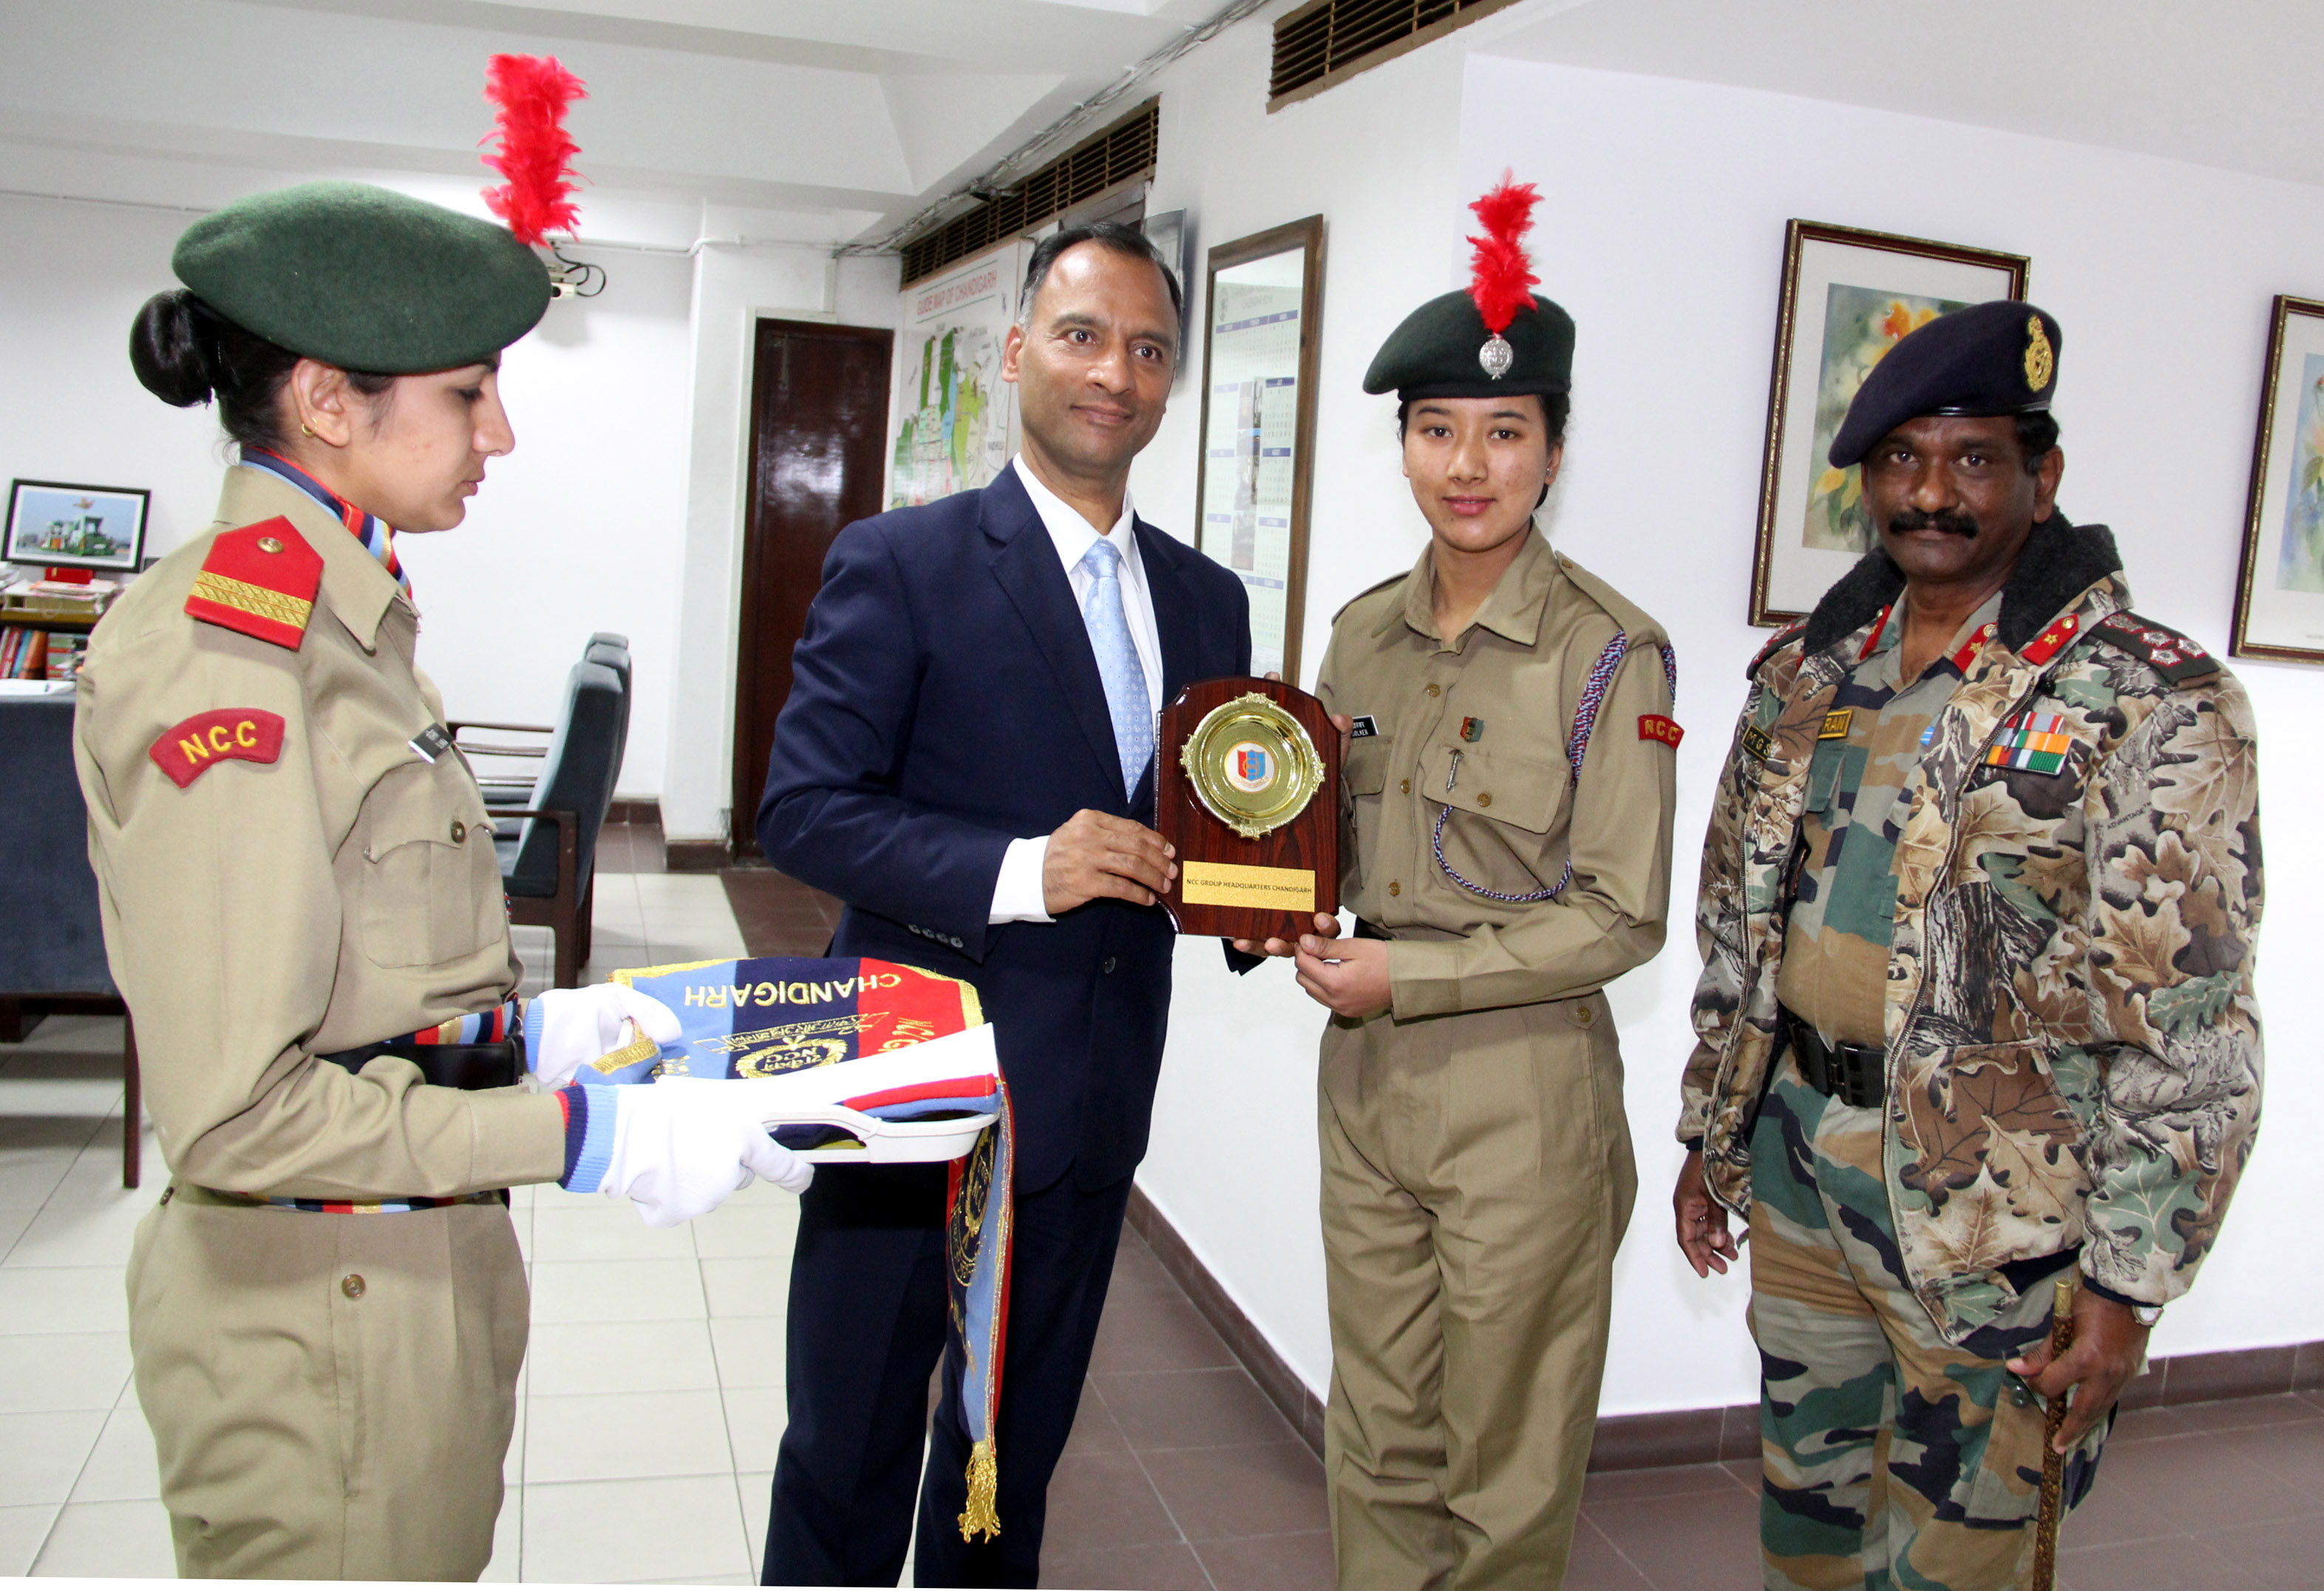 The Adviser to the Administrator, UT, Chandigarh, Mr. Vijay Dev Felicitated  to Cadet Rigzen Dolkar NCC, Chandigarh, for getting selected to scale Mr. Everest Ependition (all Girls) NCC in Apr 2016 at UT Secretariat, Chandigarh on Thursday, February 11, 2016.She completed her training at Siachen Glacier last week.